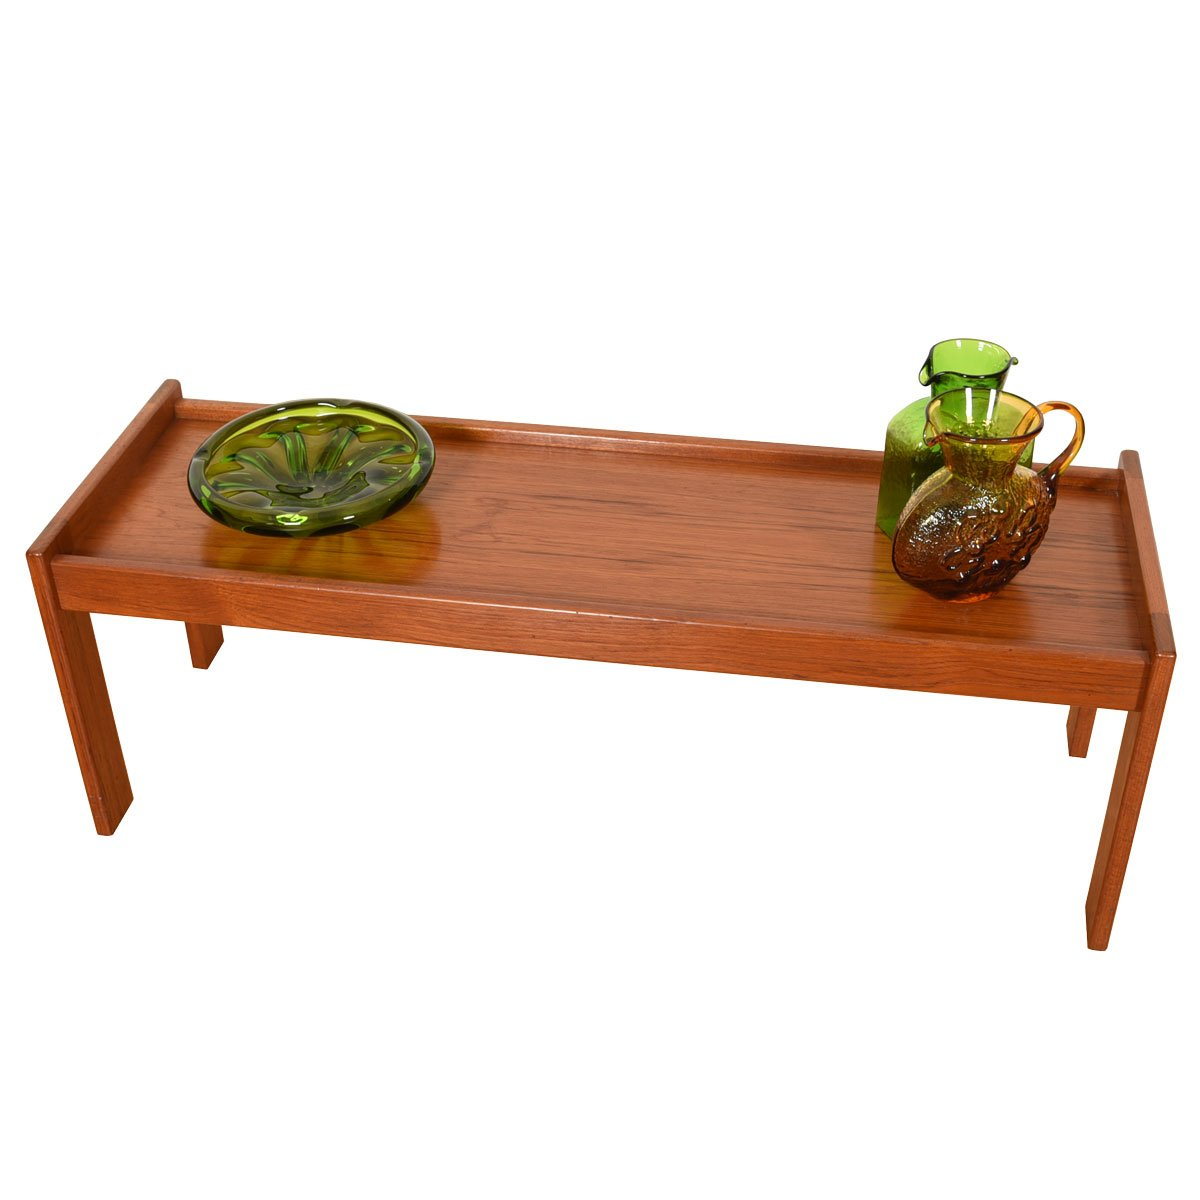 Danish Teak Petite Raised Edge Low Coffee Table / Bench